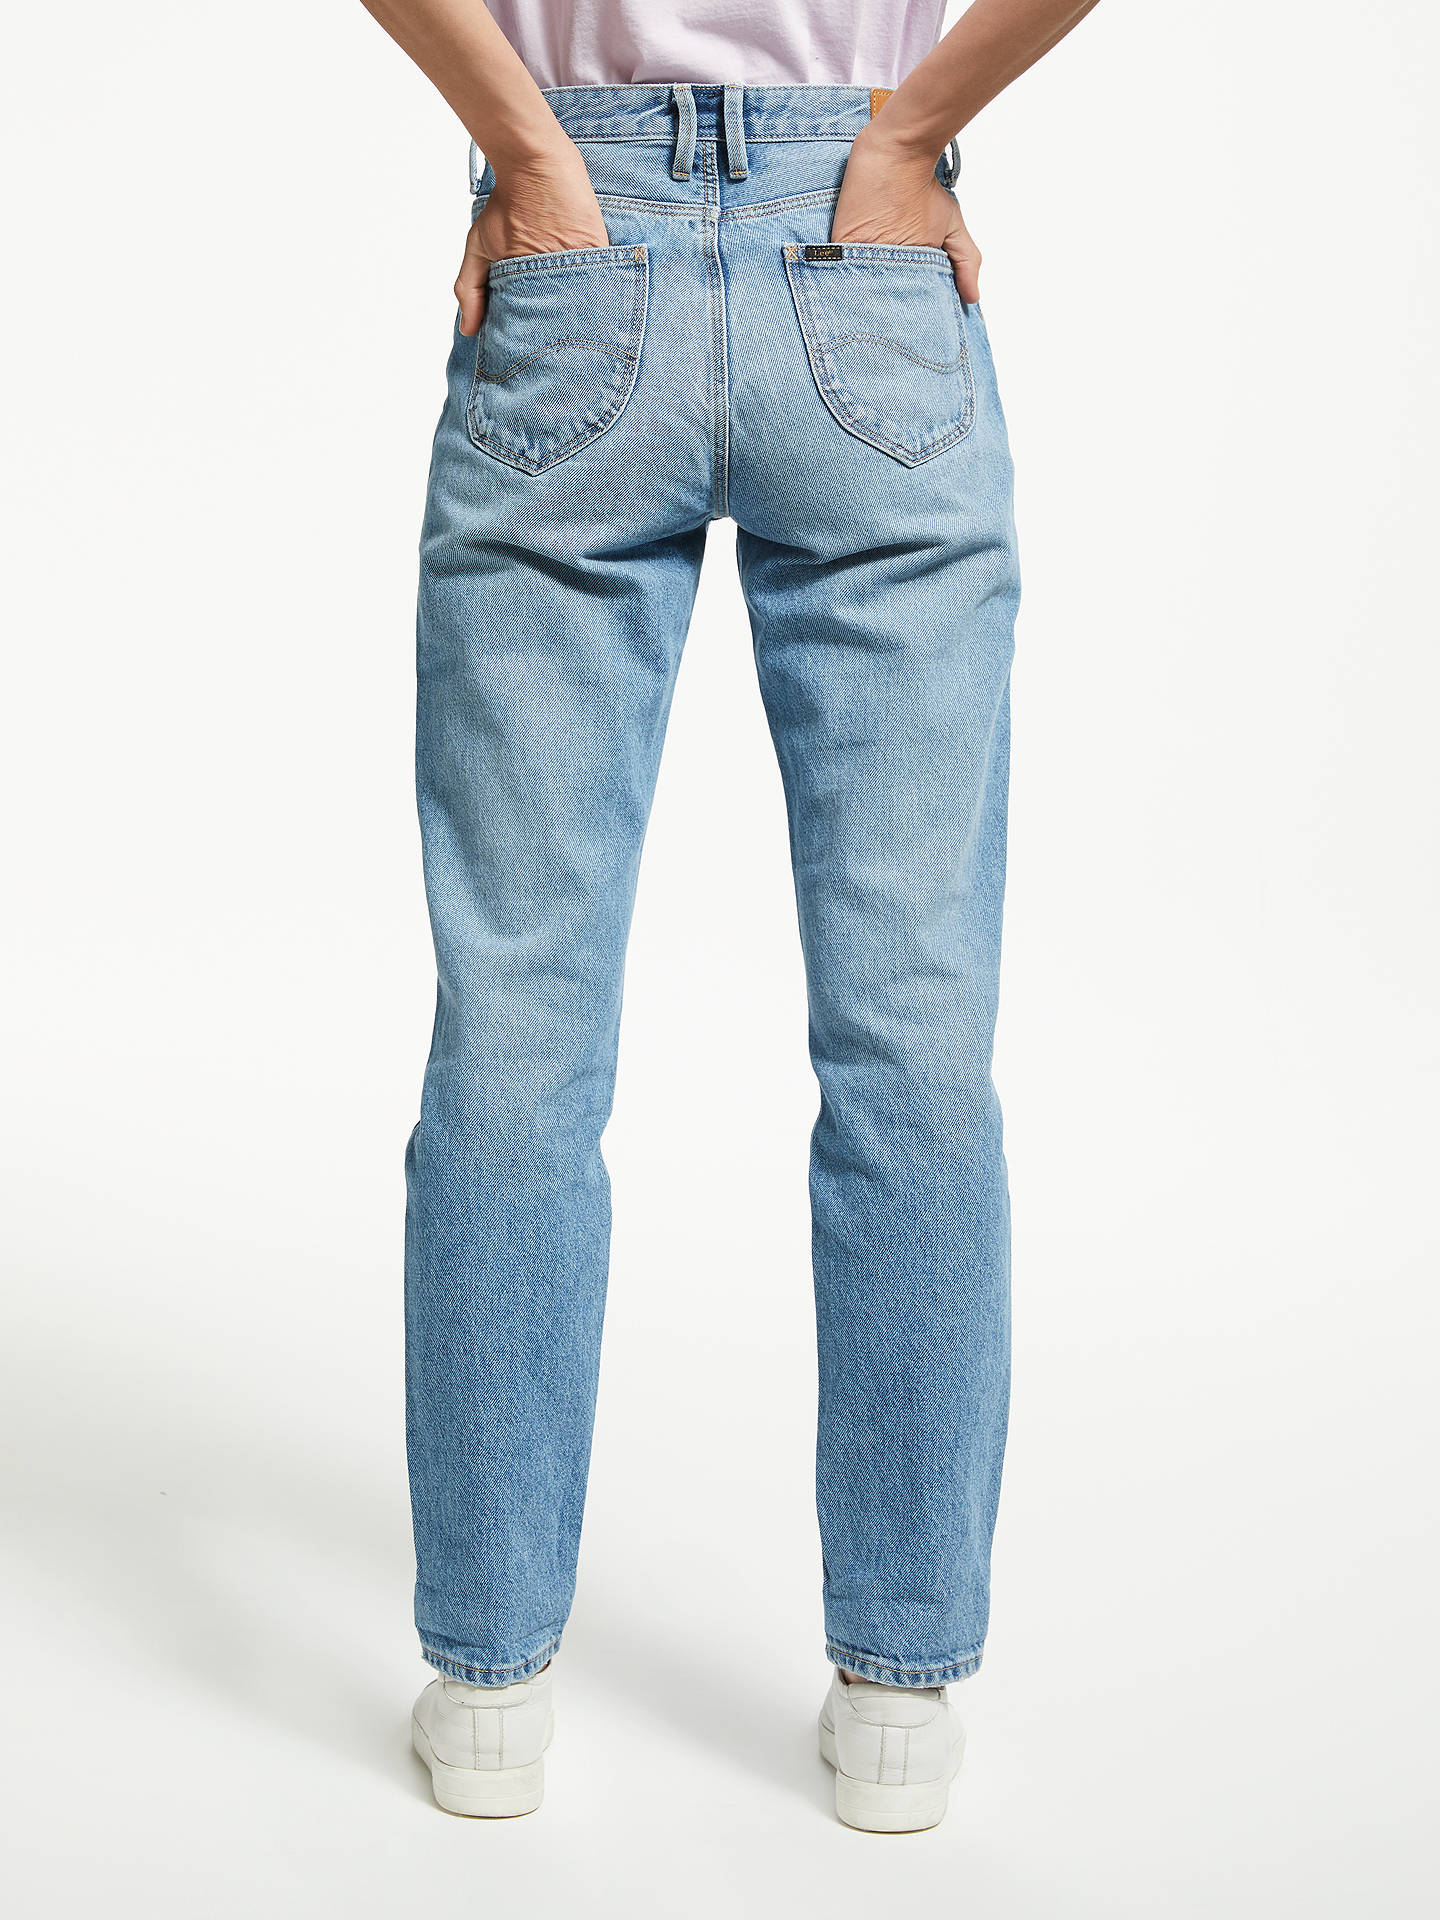 29785697 Buy Lee Mom Straight Relaxed Jeans, Salina, W27/L31 Online at johnlewis.